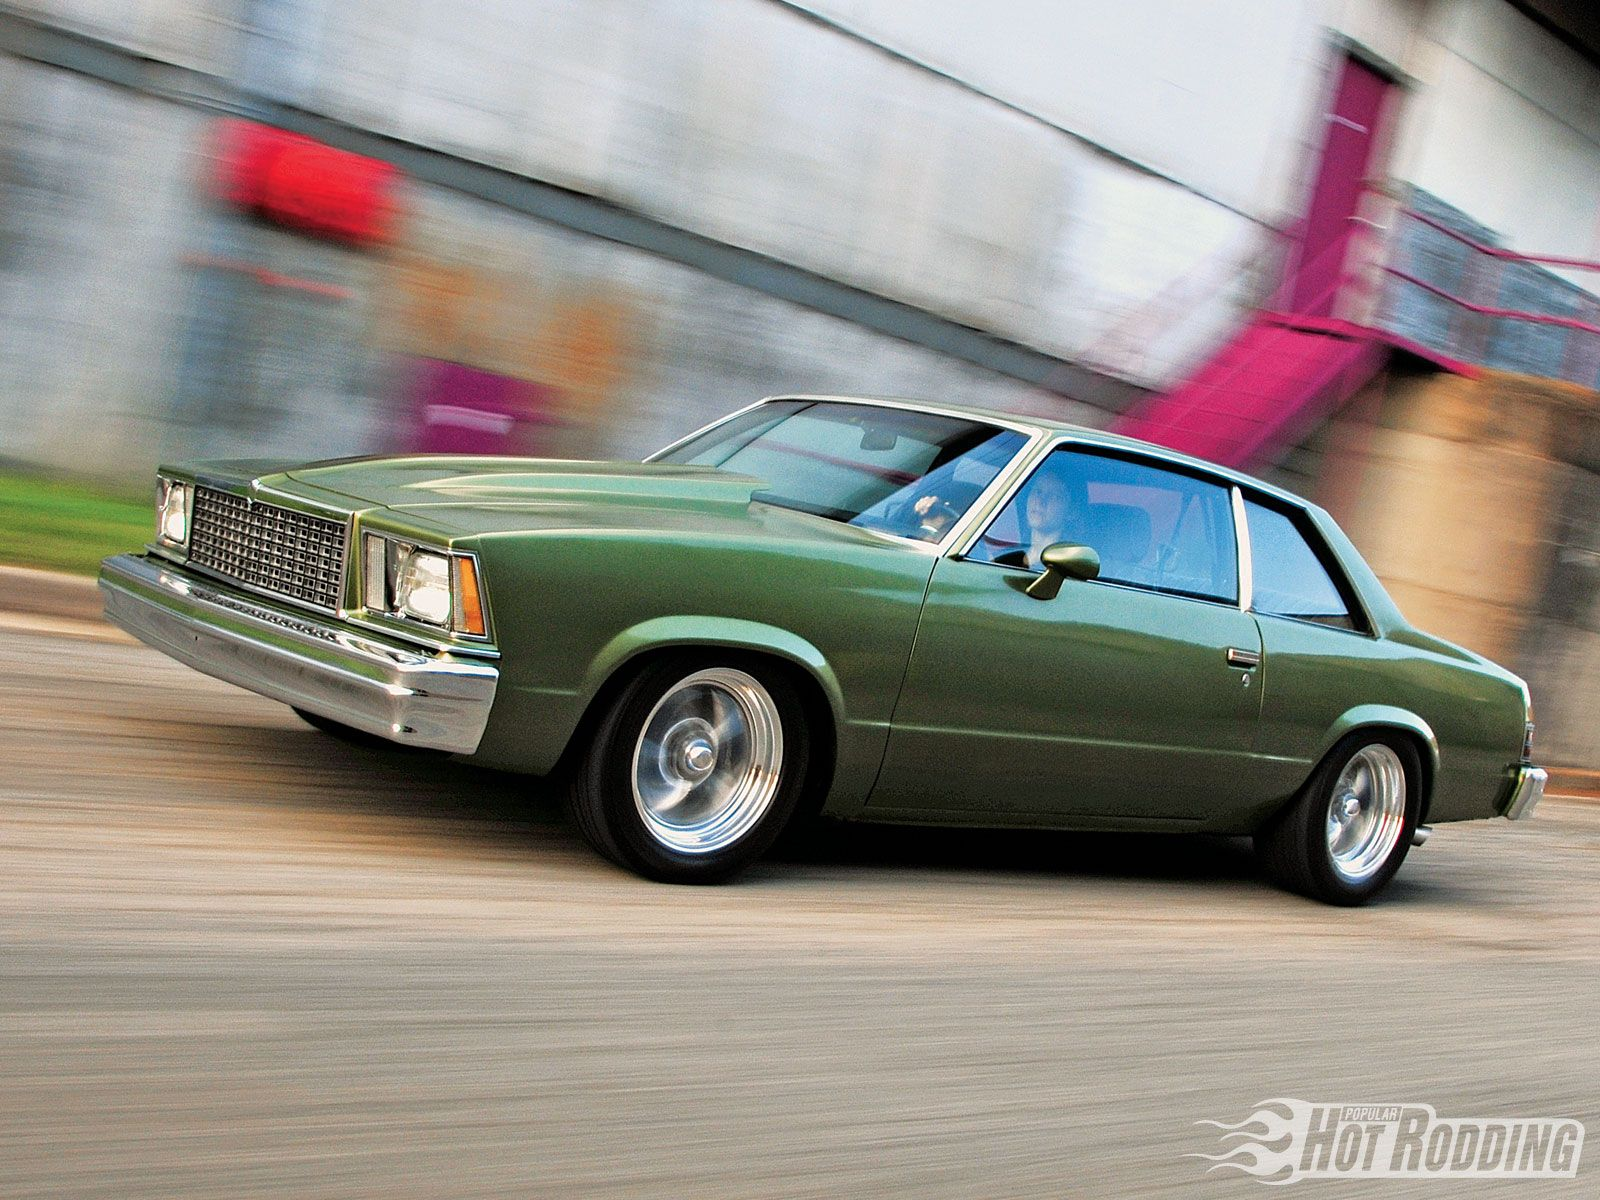 S Chevrolet Malibu Classic Coupe Funky Color Nice Ride